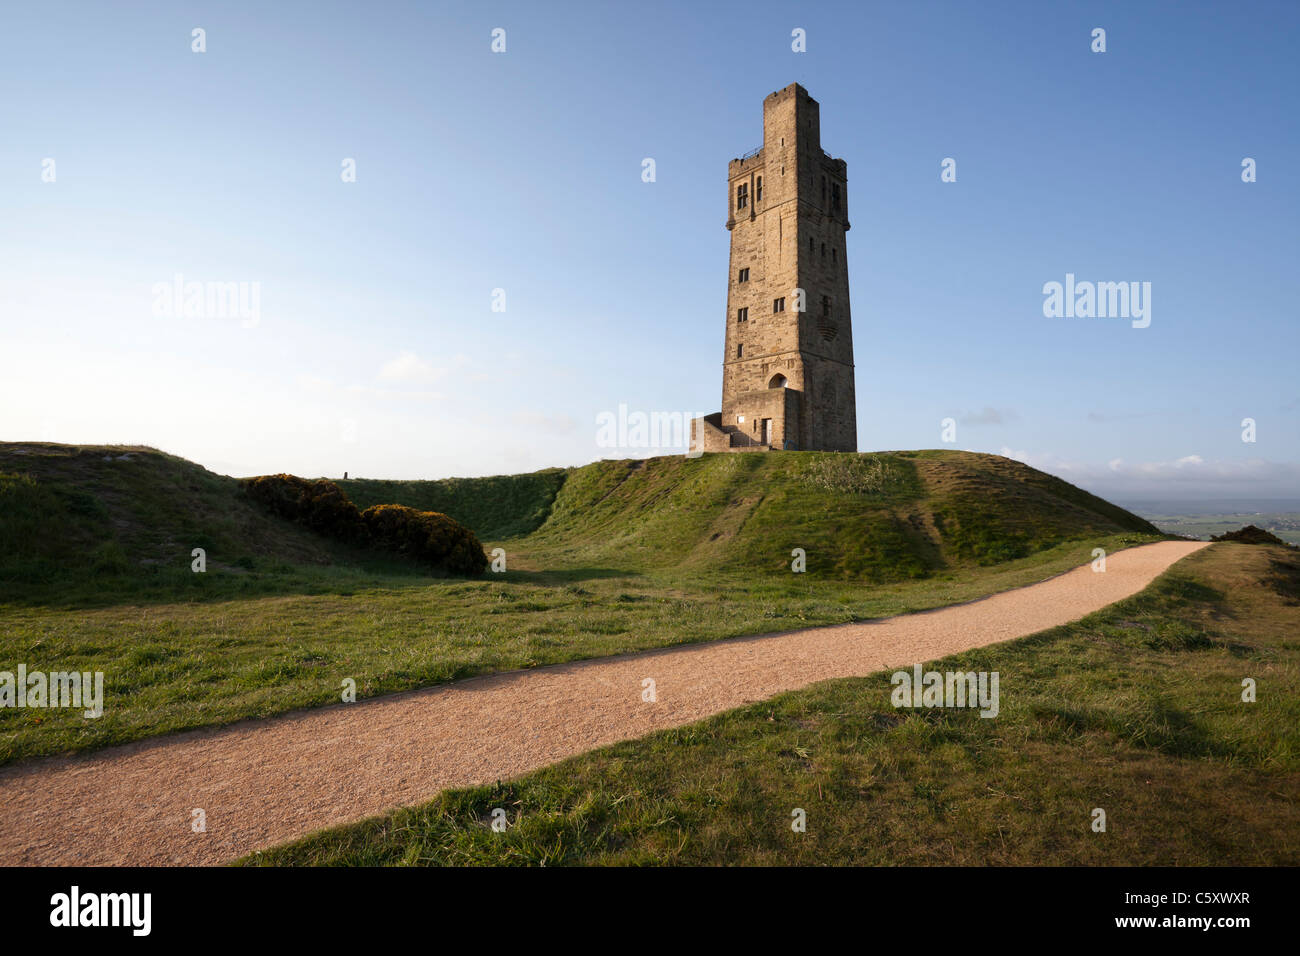 Castle Hill Tower, on  Castle Hill, Huddersfield, Kirklees, West Yorkshire. - Stock Image